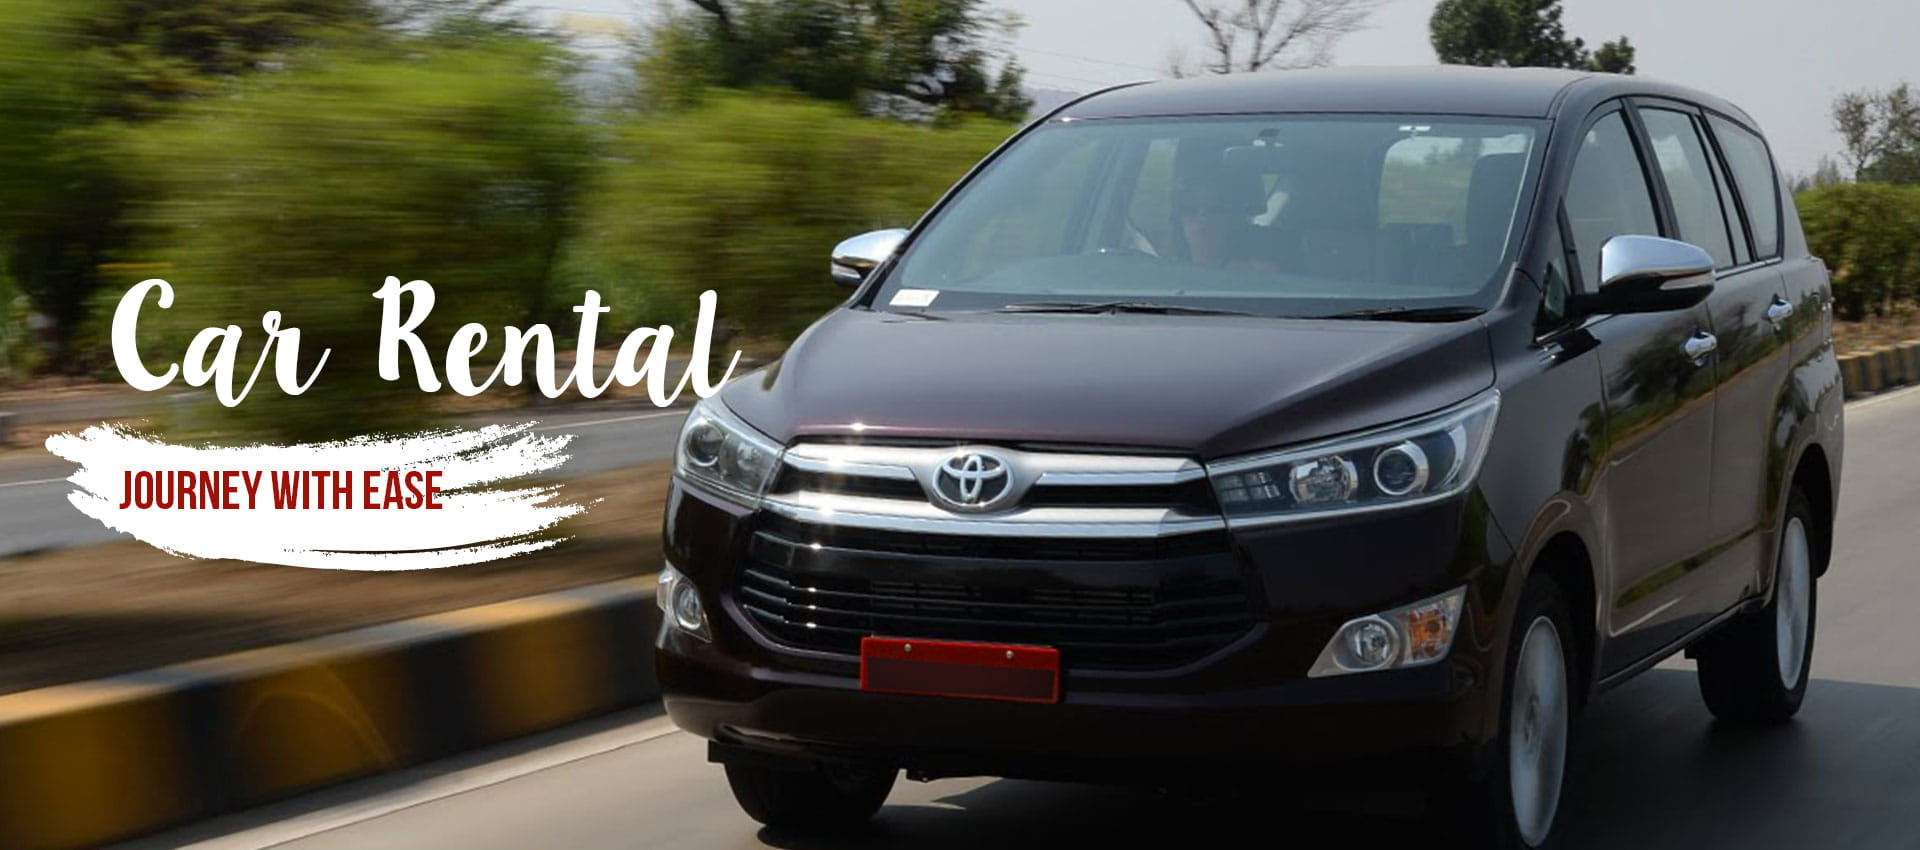 Car rental Service - Av tours